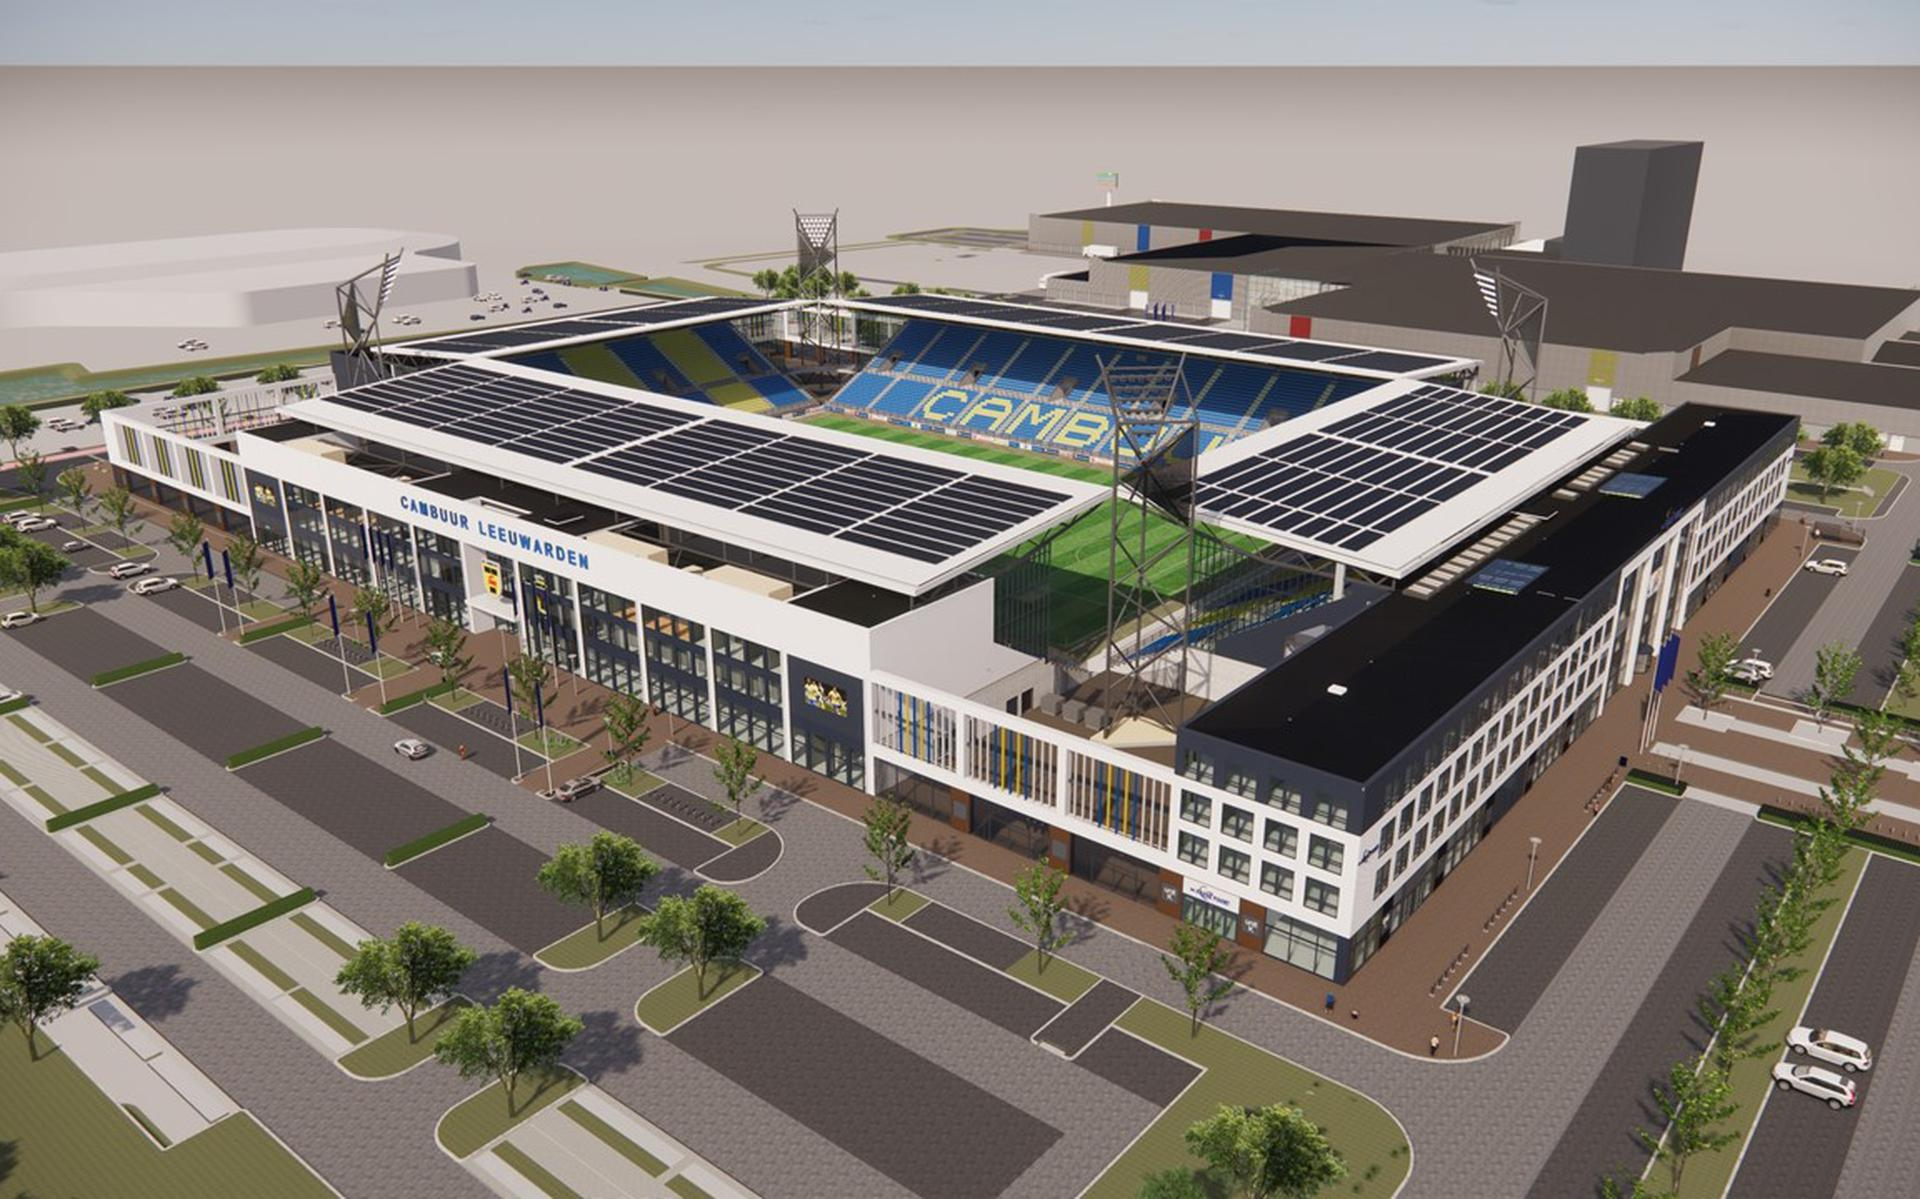 Podcast 't Hertenkamp |  Cambuur reasonably hits Fortuna and is the brand new stadium design extra stunning or not?